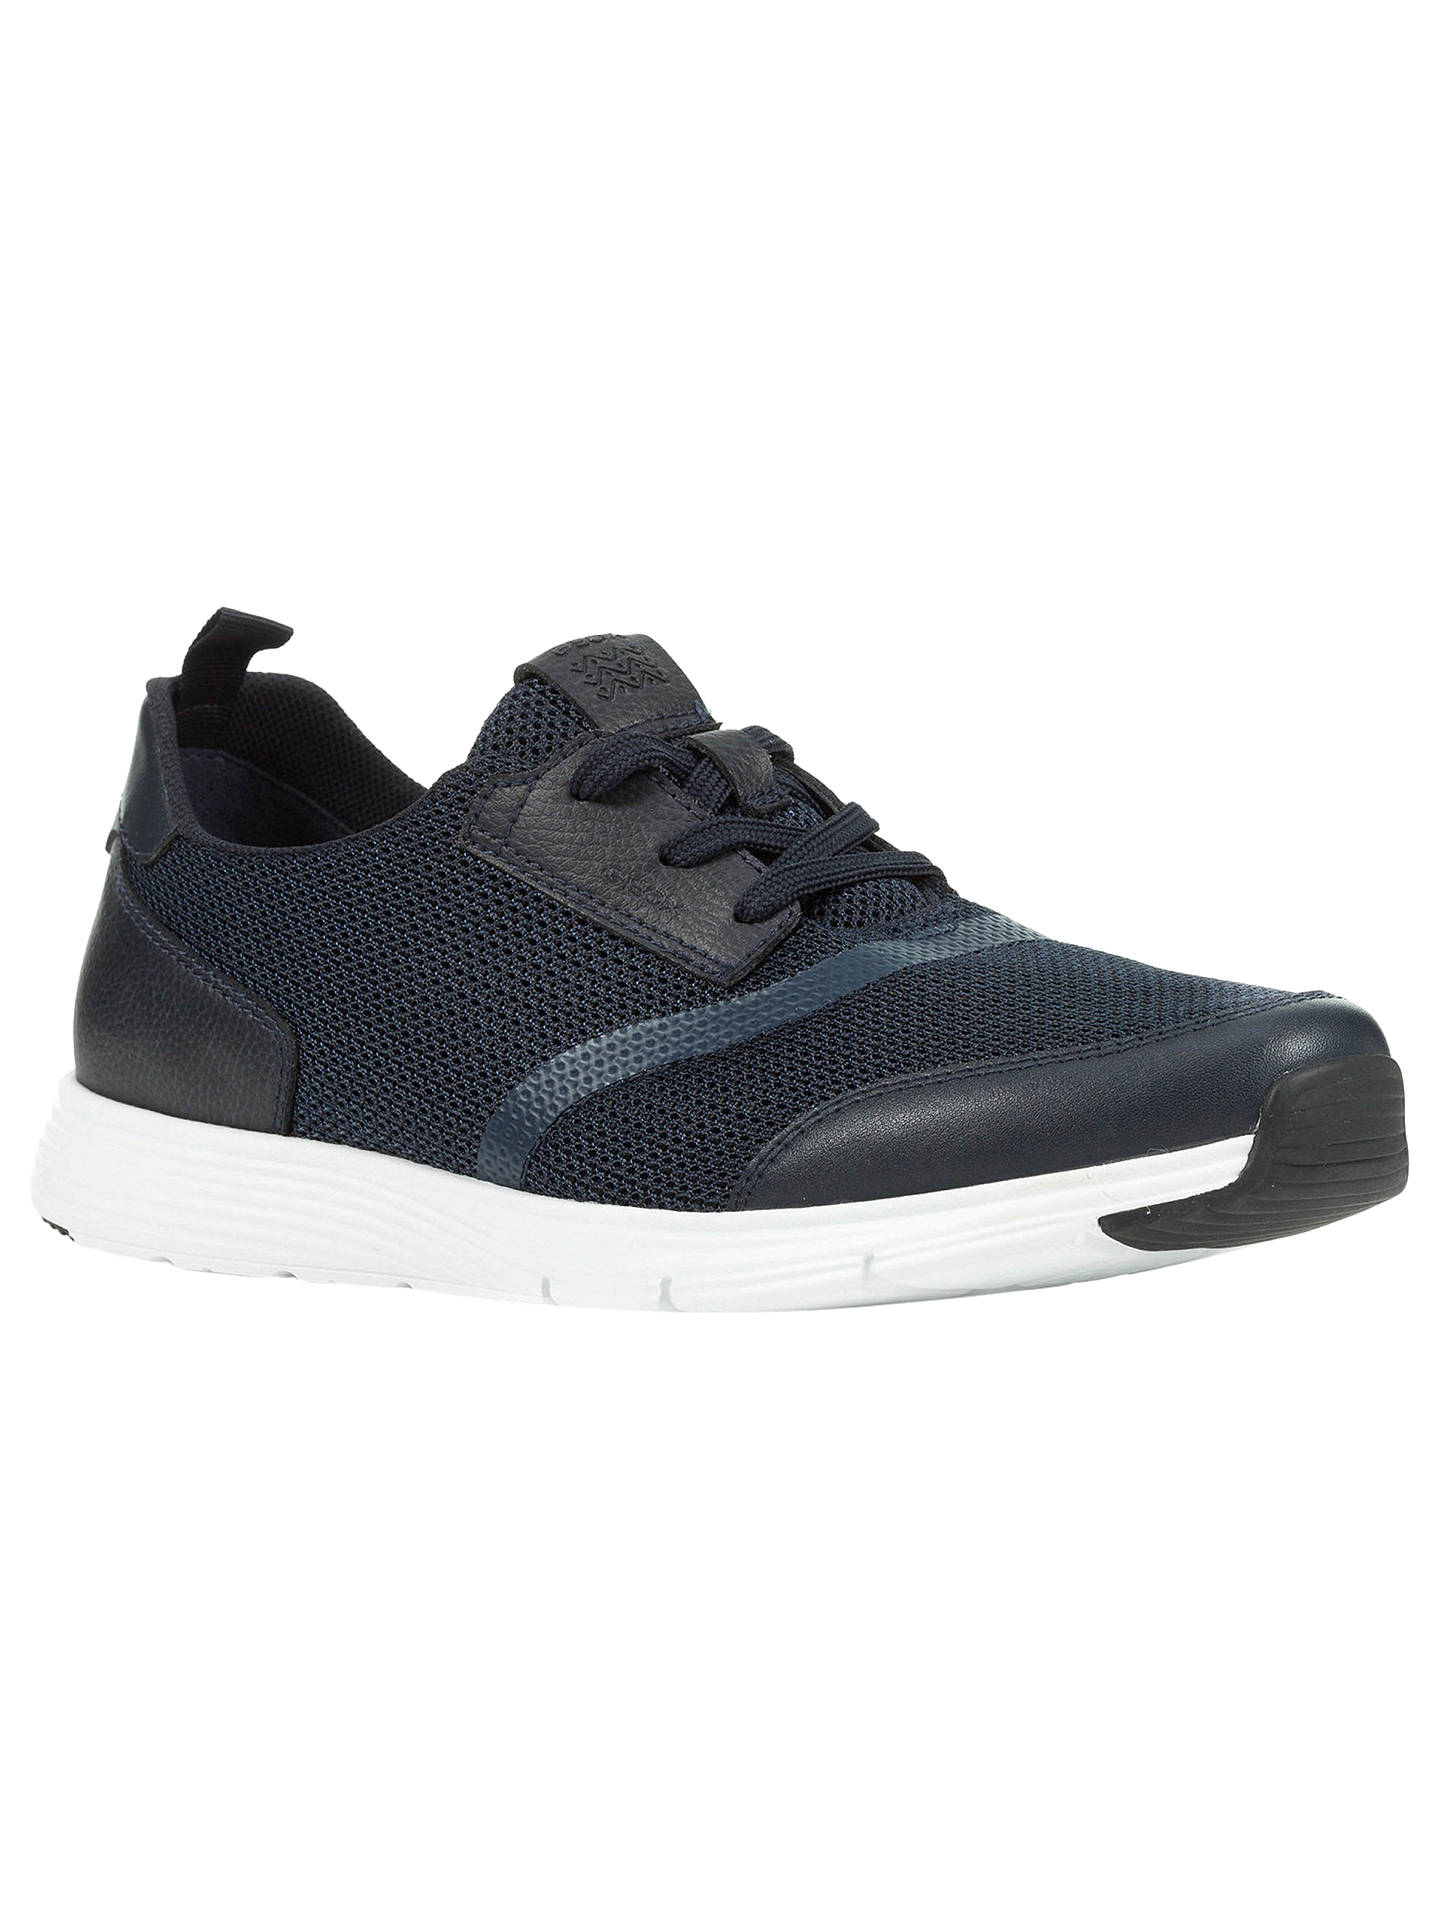 Geox Snapish Textured Trainers at John Lewis & Partners